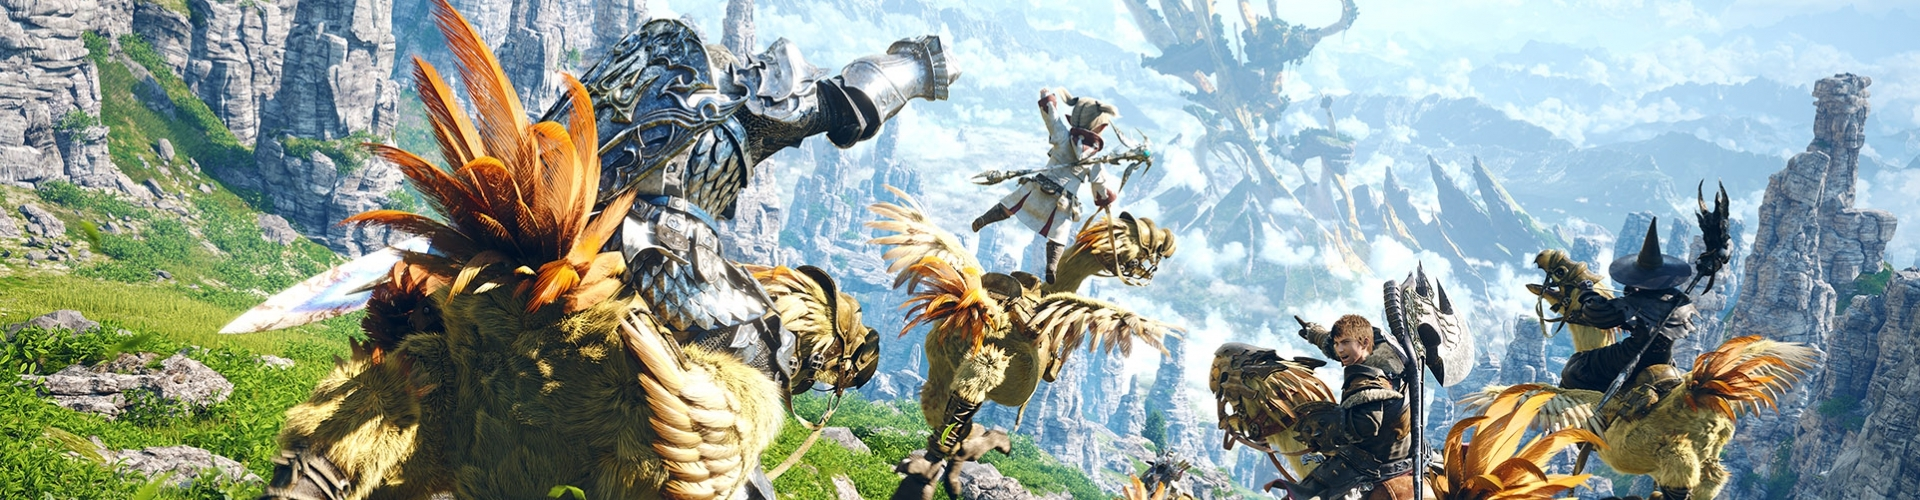 "Final Fantasy 14: Patch 3.1 ""As Goes Light, So Goes Darkness"" ist online - alle Infos"